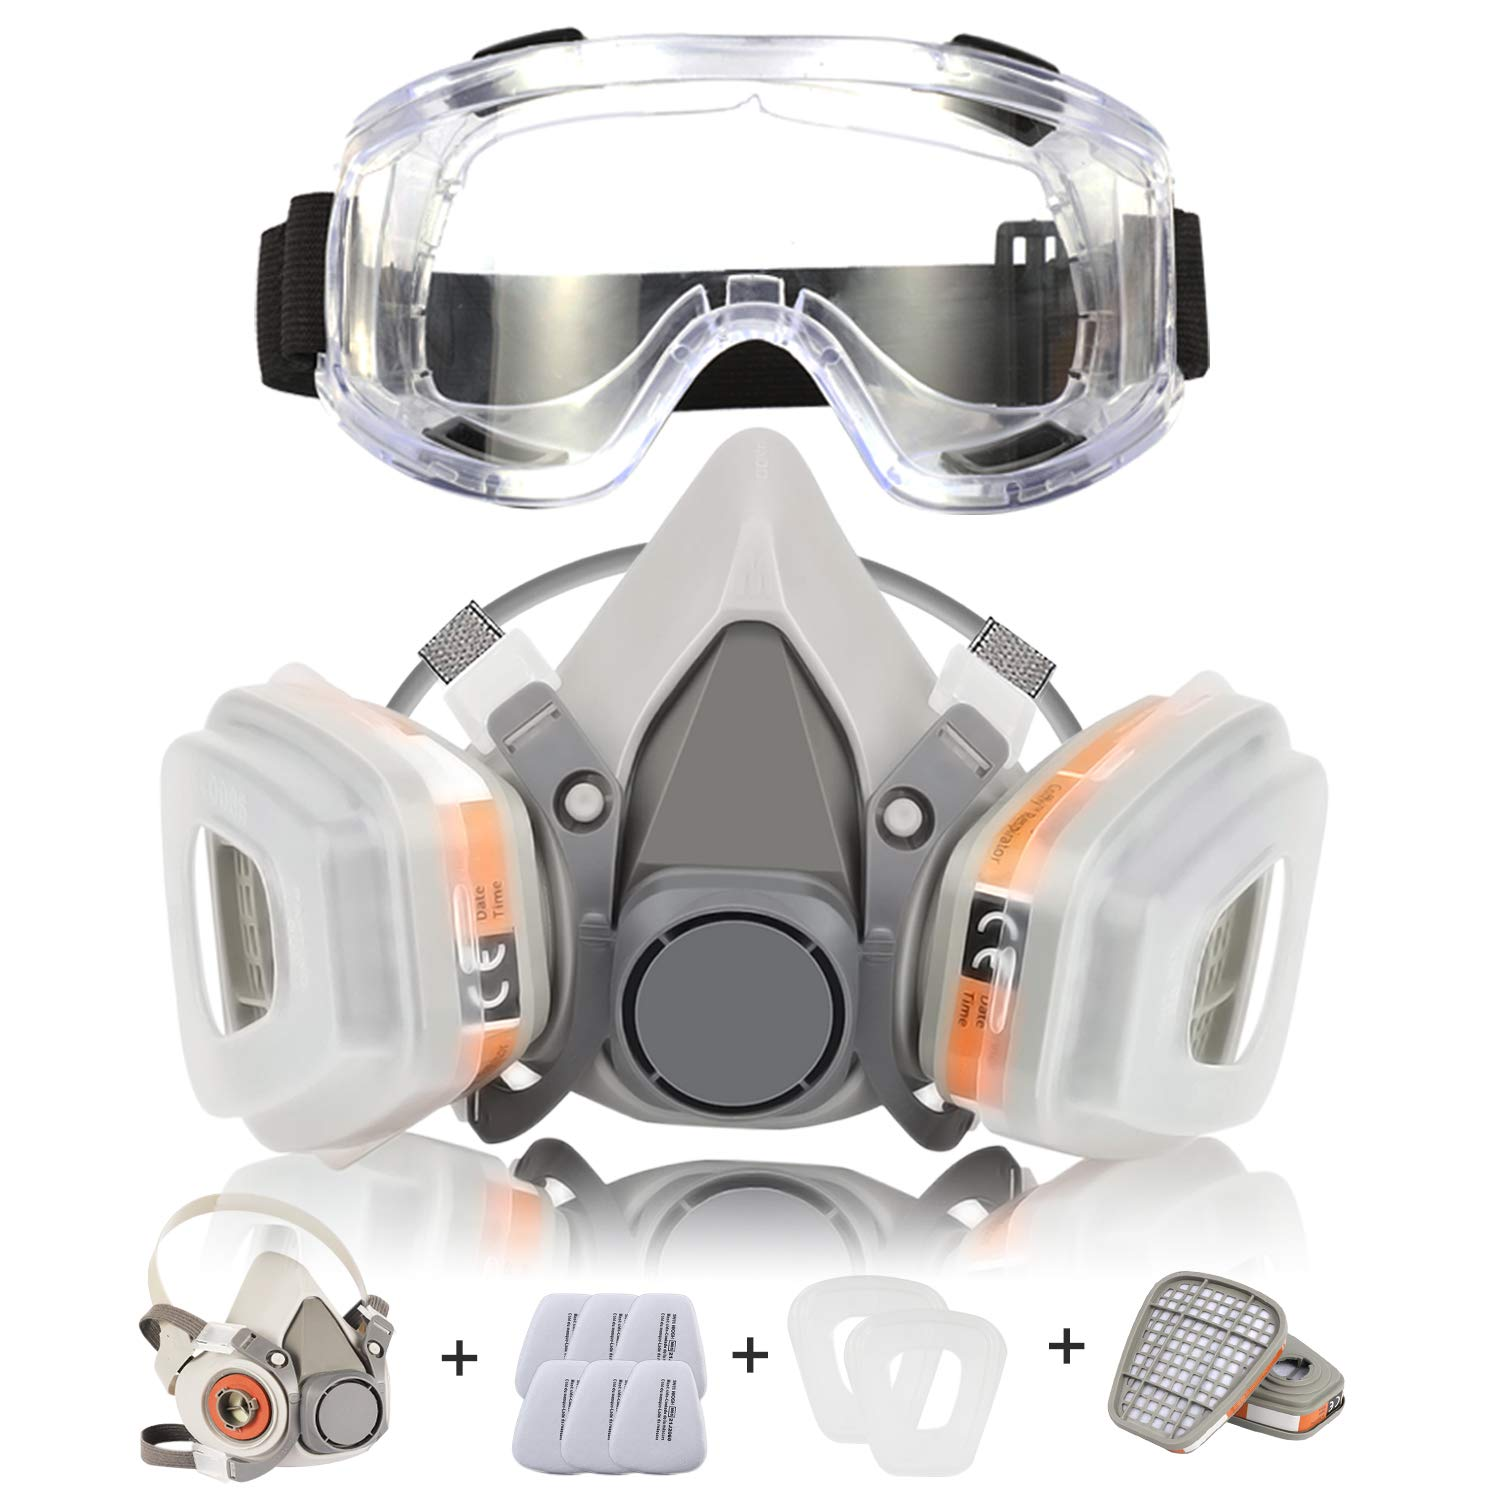 Respirator Mask Half Facepiece Gas Mask Safety Glasses Reusable  Breathing Protection Against Dust Organic Vapors Pollen